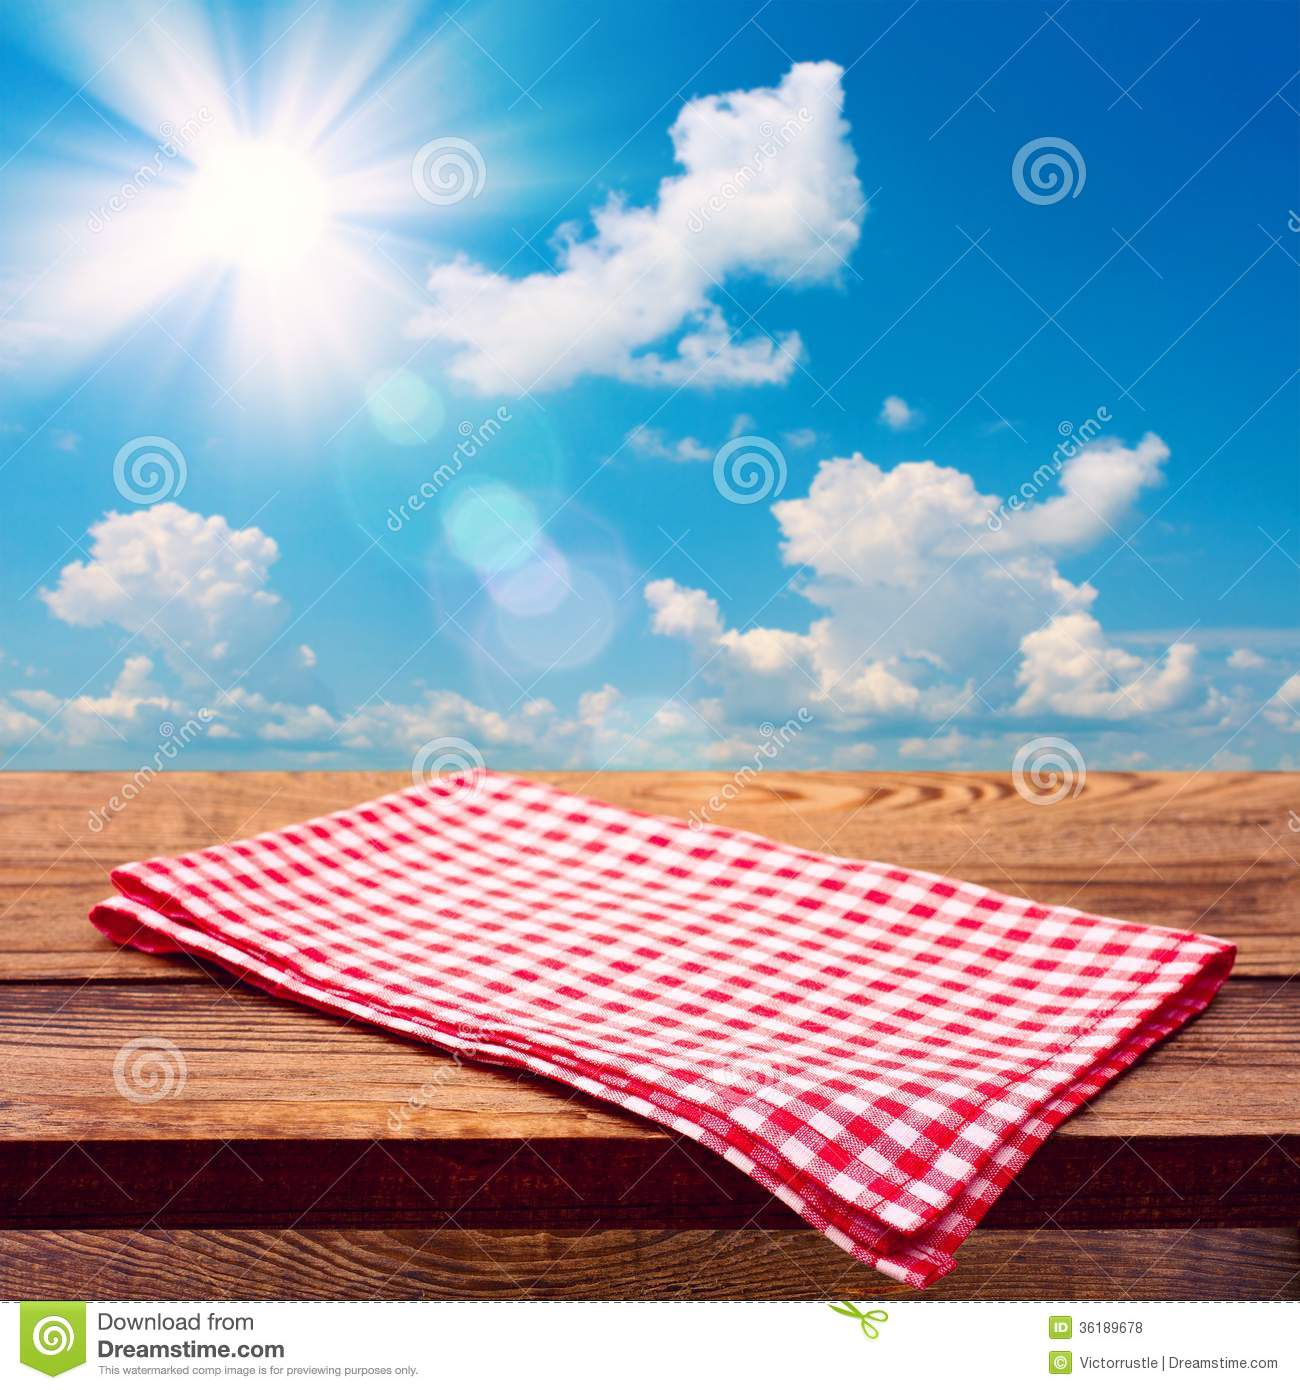 Empty Wooden Deck Table With Tablecloth Royalty Free Stock ...